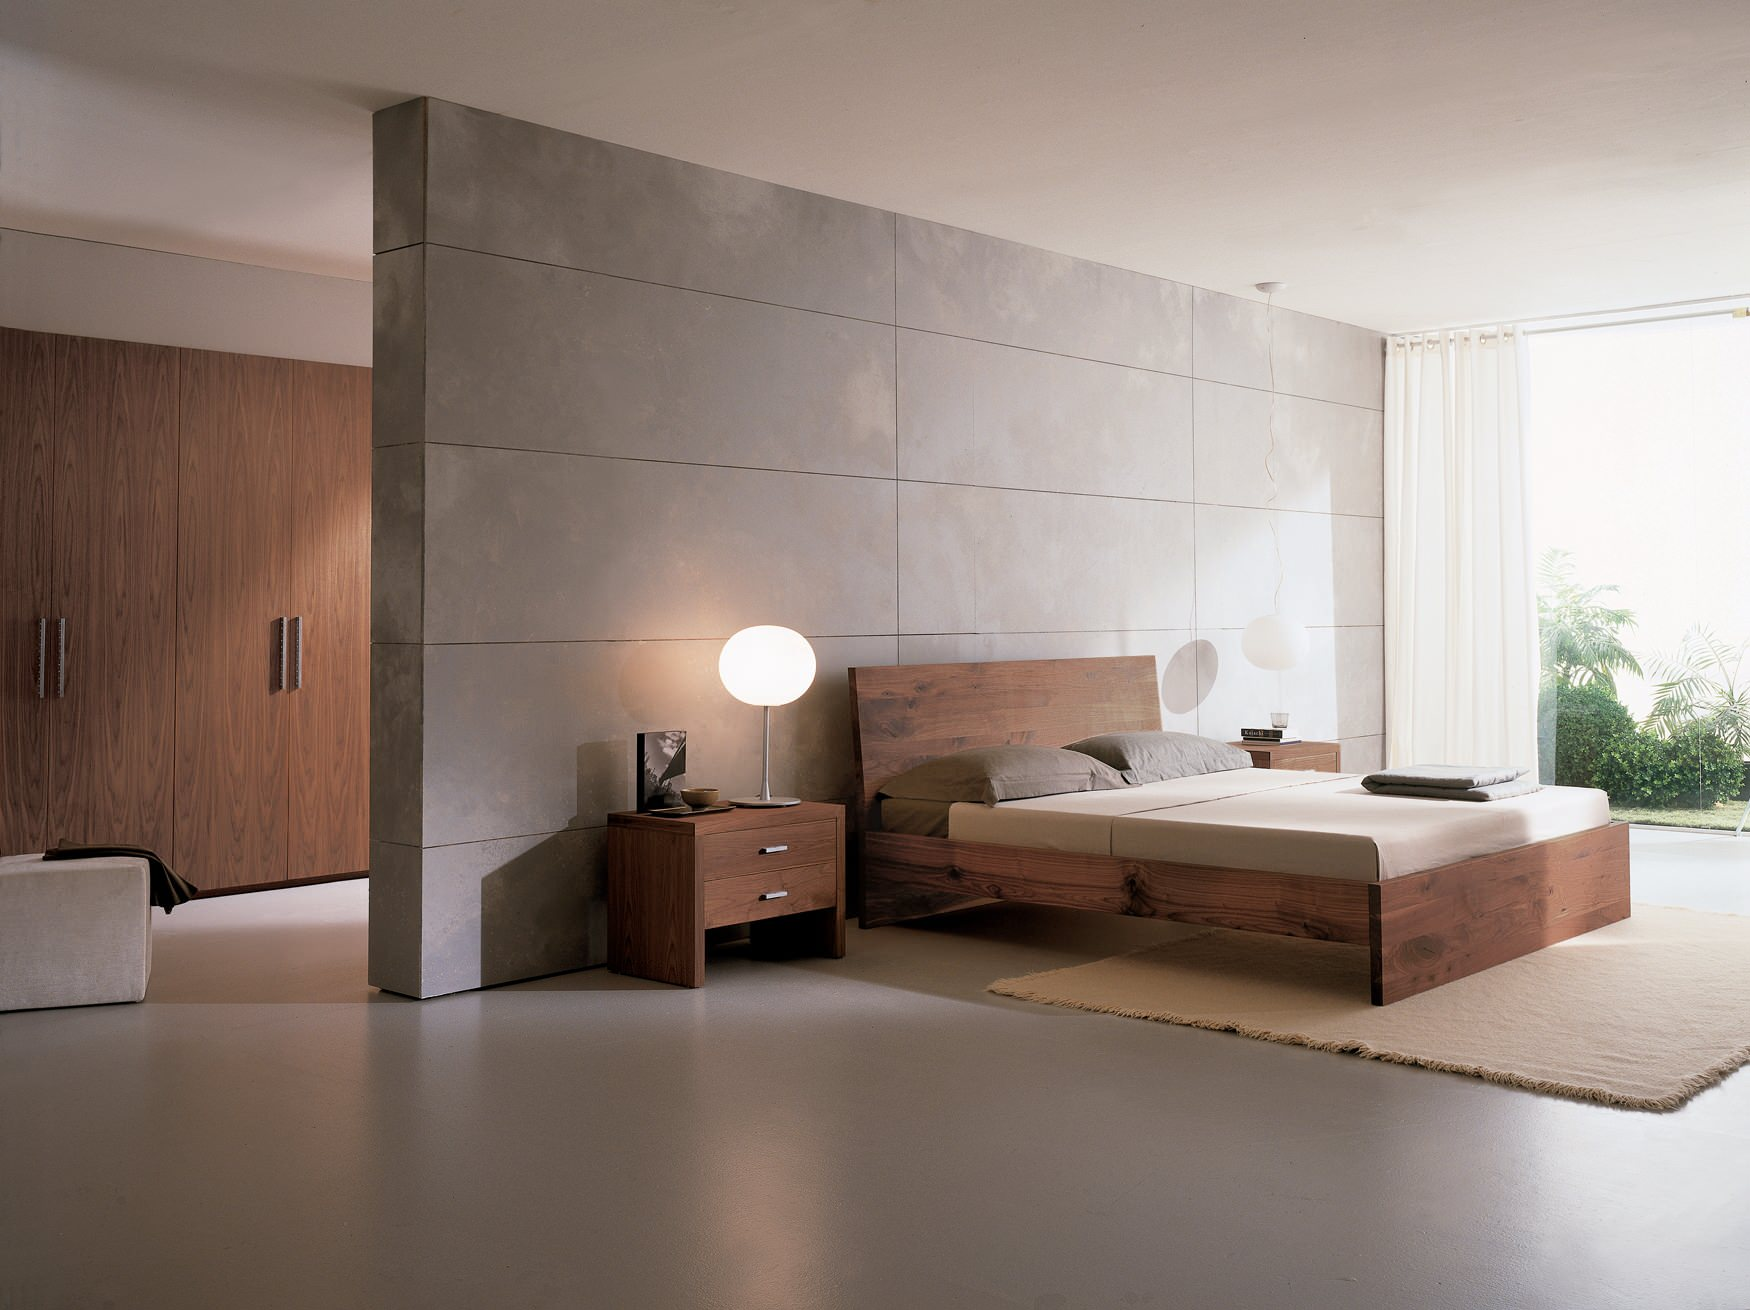 Furniture and Walls